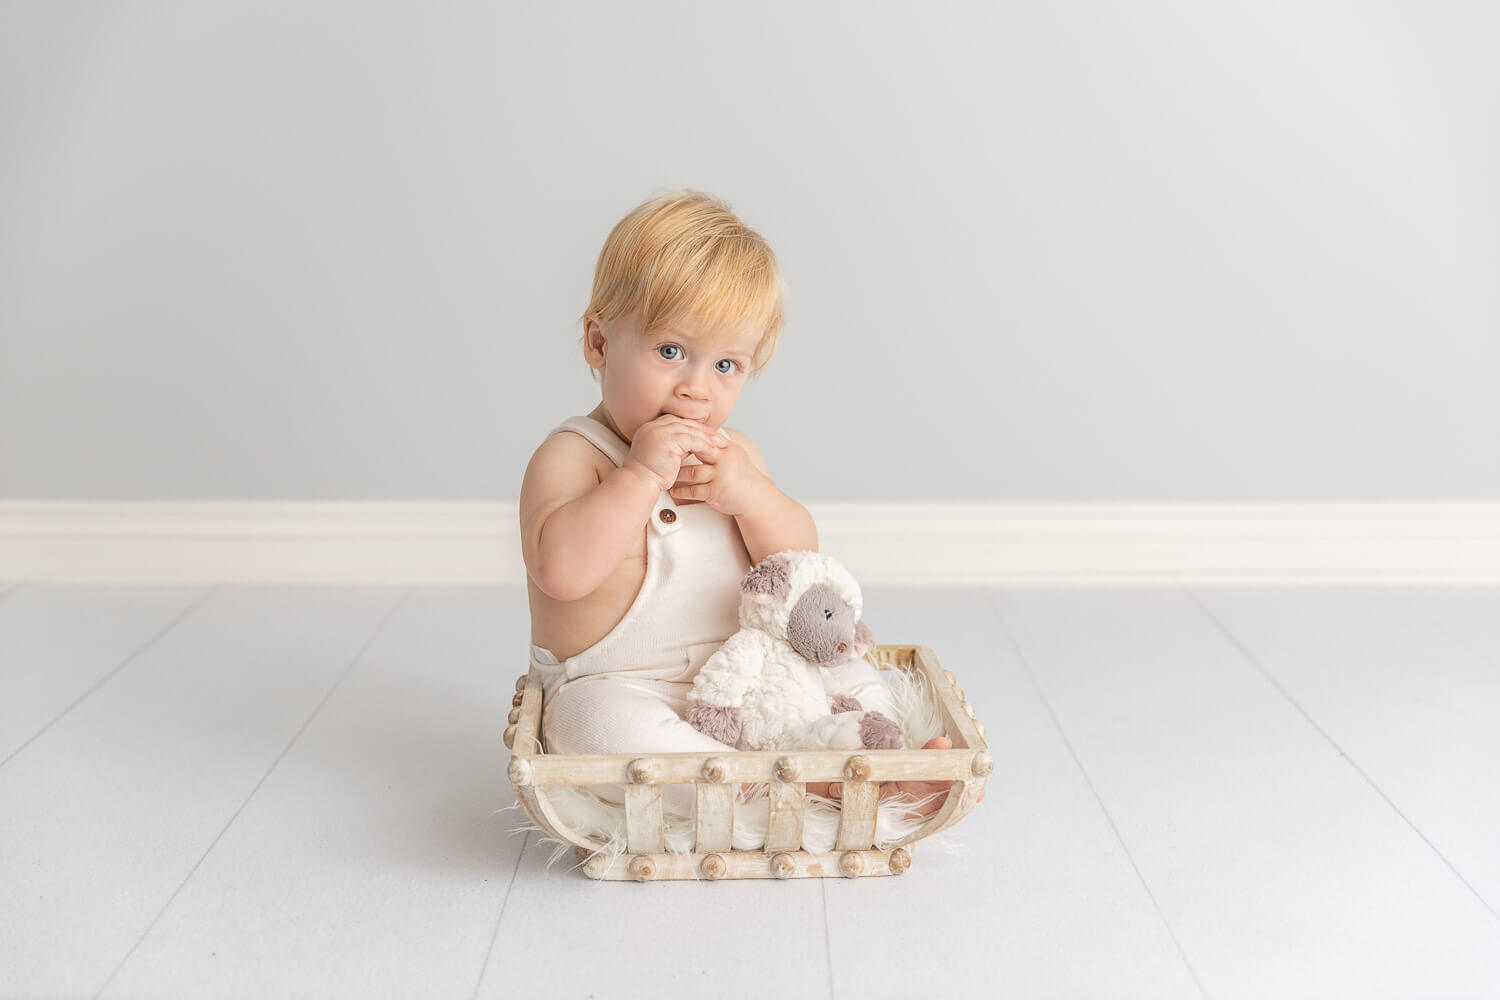 baby boy wearing white overalls sitting in a white bowl with lamb in a white studio